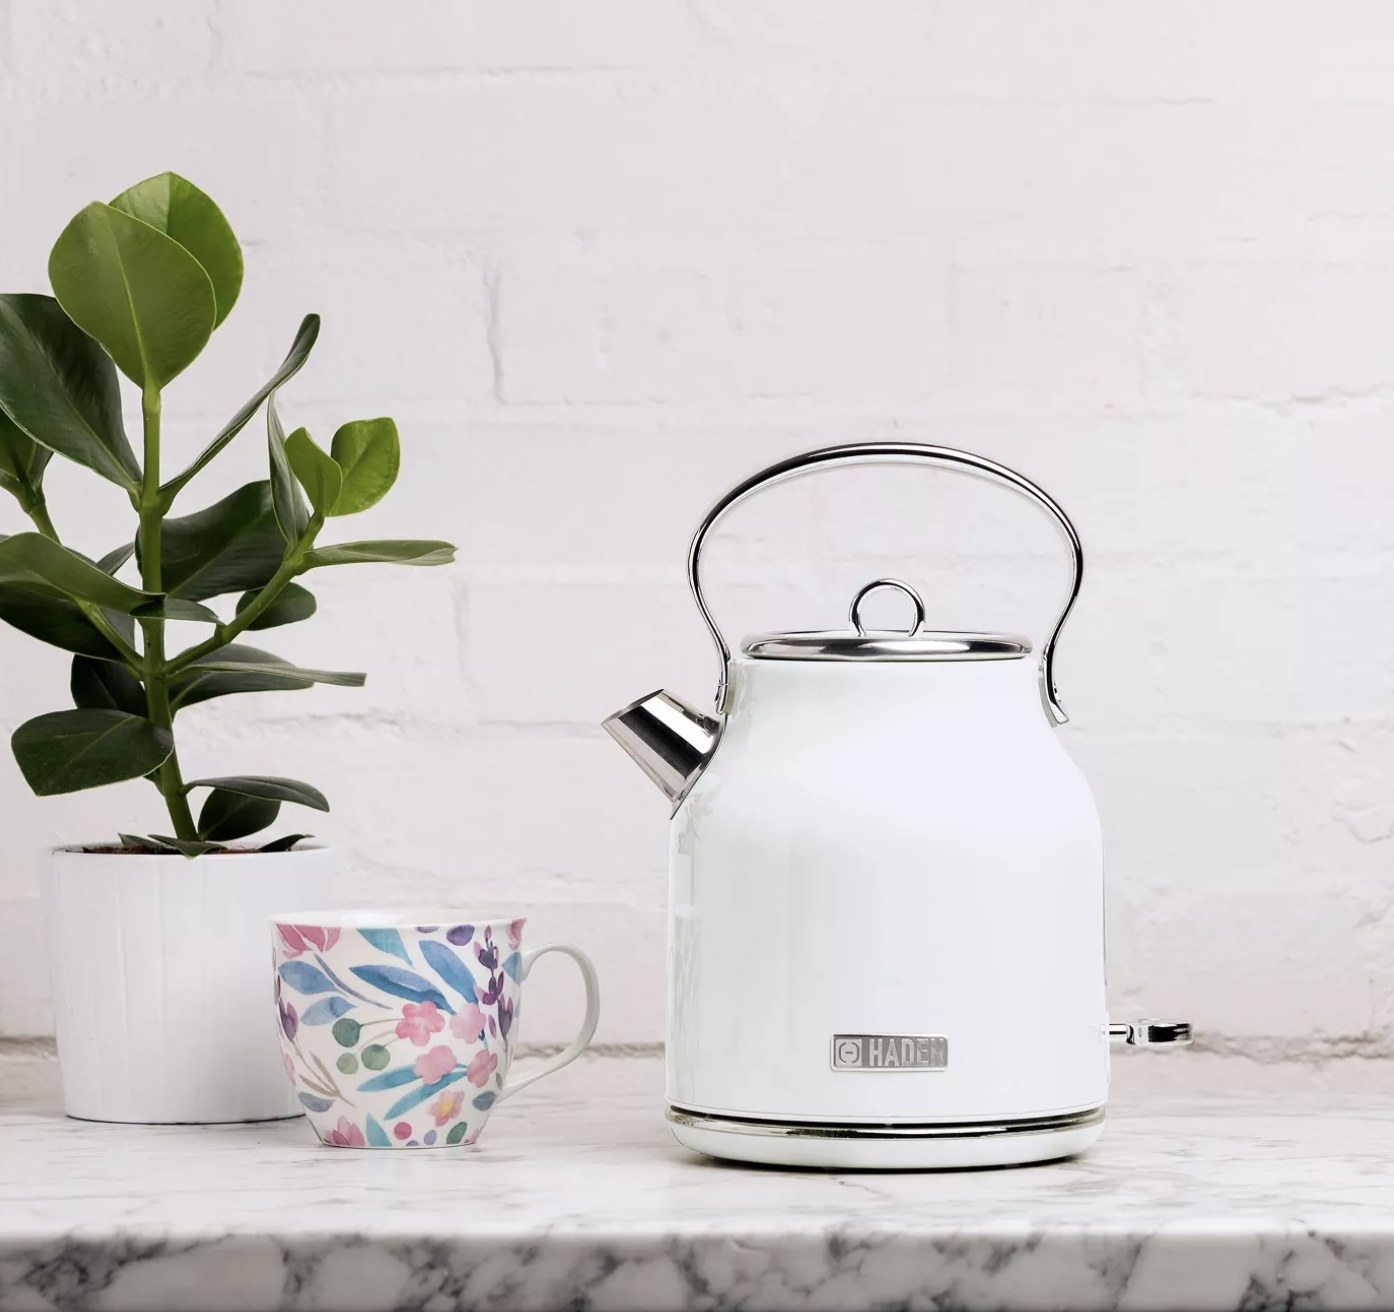 A white tea kettle